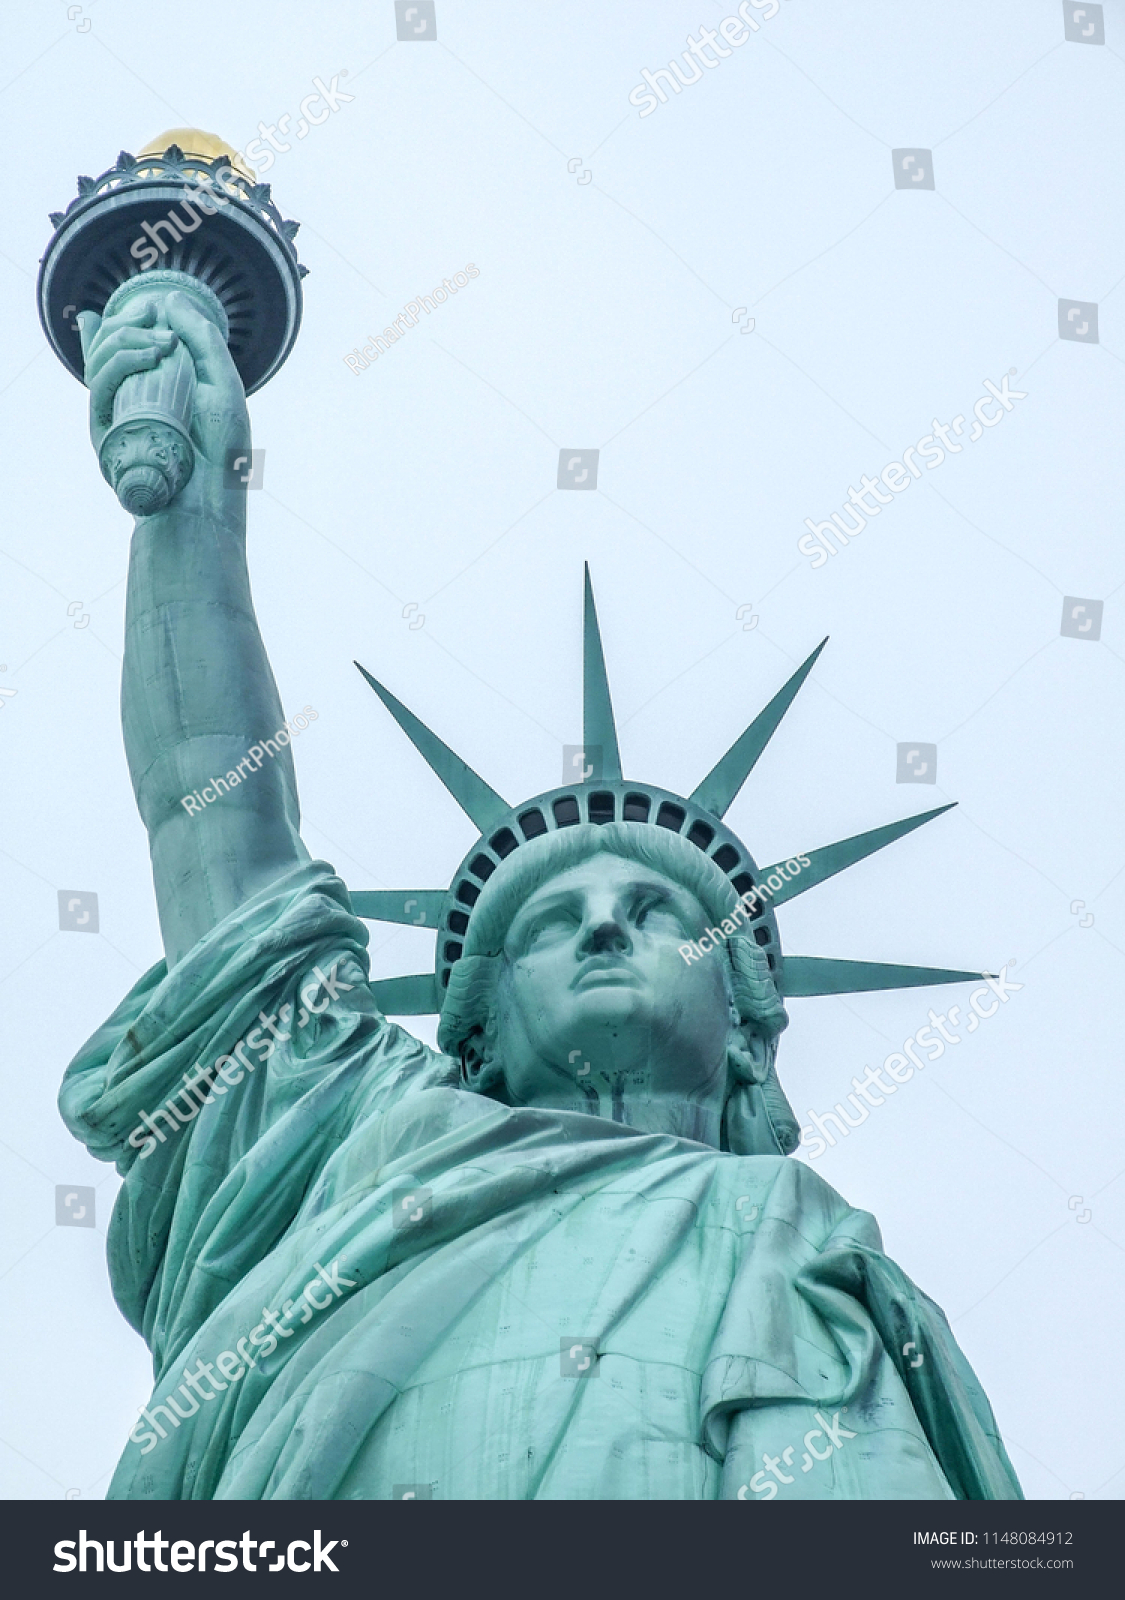 37cd5f63b6ee6 Statue Liberty Close Body Face Arm Stock Photo (Edit Now) 1148084912